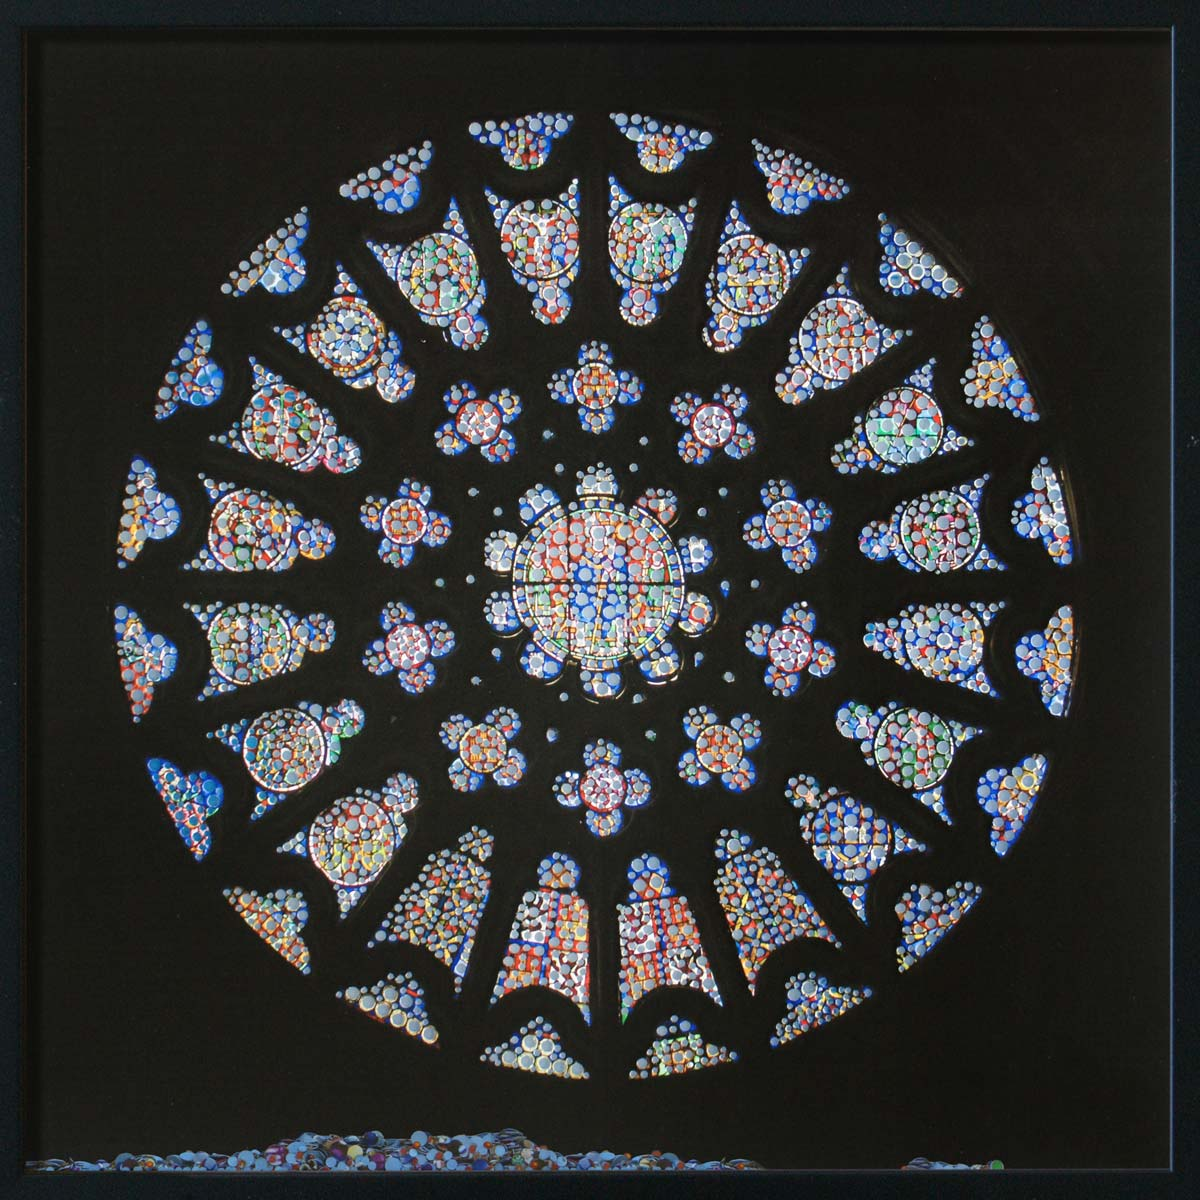 Revelation, Catedral de Burgos, © 2011, Perforated inkjet print, loose confetti produced by the perforation process, each 50 x 50 cm